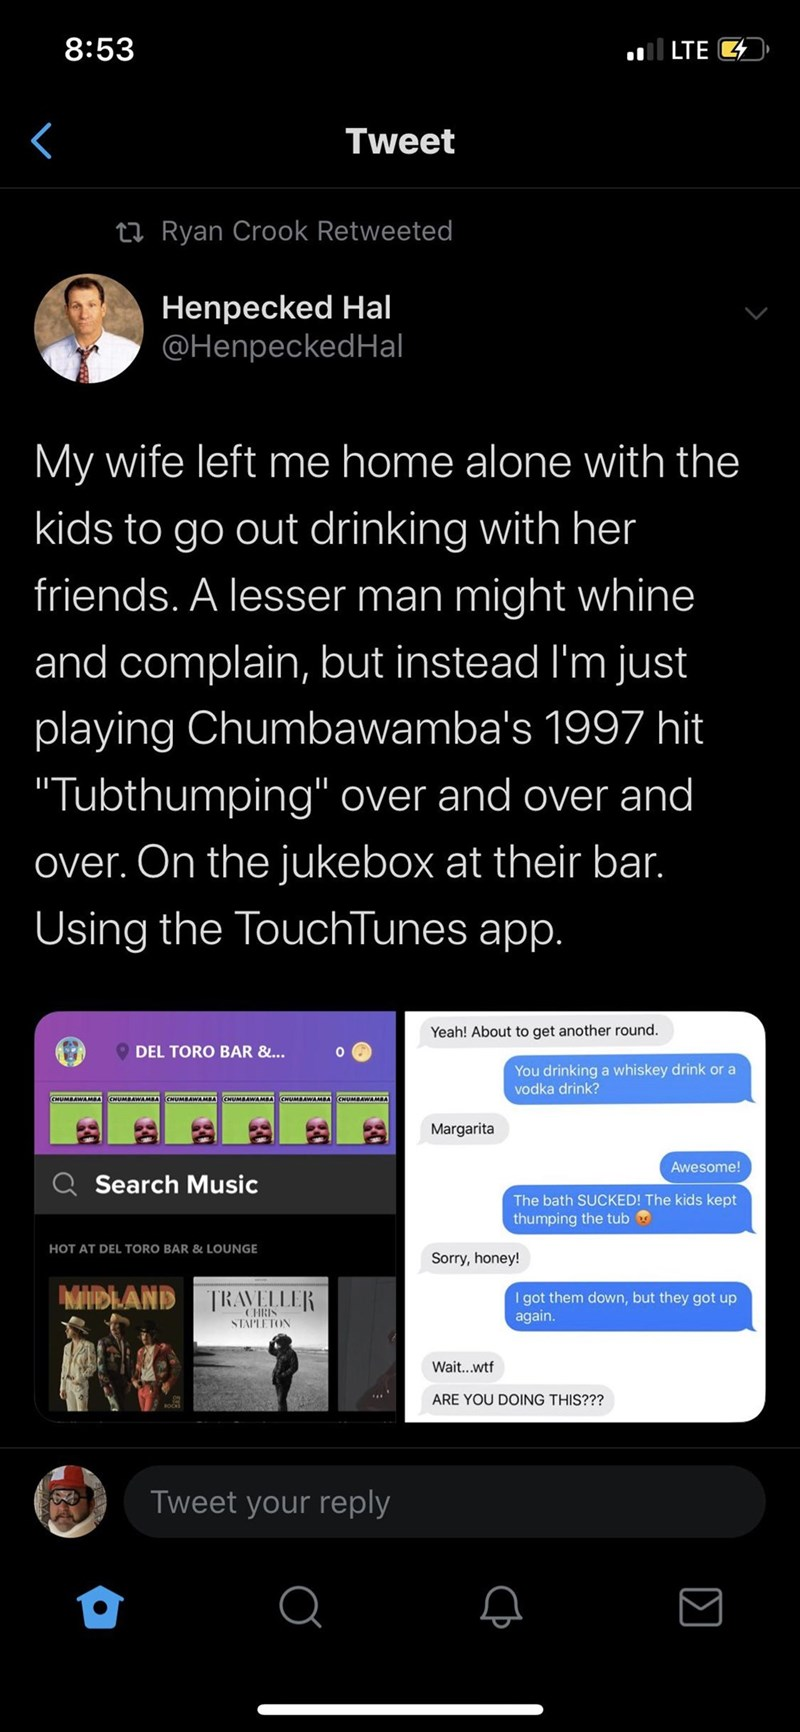 """Text - 8:53 all LTE 4 Tweet 27 Ryan Crook Retweeted Henpecked Hal @HenpeckedHal My wife left me home alone with the kids to go out drinking with her friends. A lesser man might whine and complain, but instead l'm just playing Chumbawamba's 1997 hit """"Tubthumping"""" over and over and over. On the jukebox at their bar. Using the TouchTunes app. Yeah! About to get another round. DEL TORO BAR &... You drinking a whiskey drink or a vodka drink? Margarita Awesome! Q Search Music The bath SUCKED! The kids"""